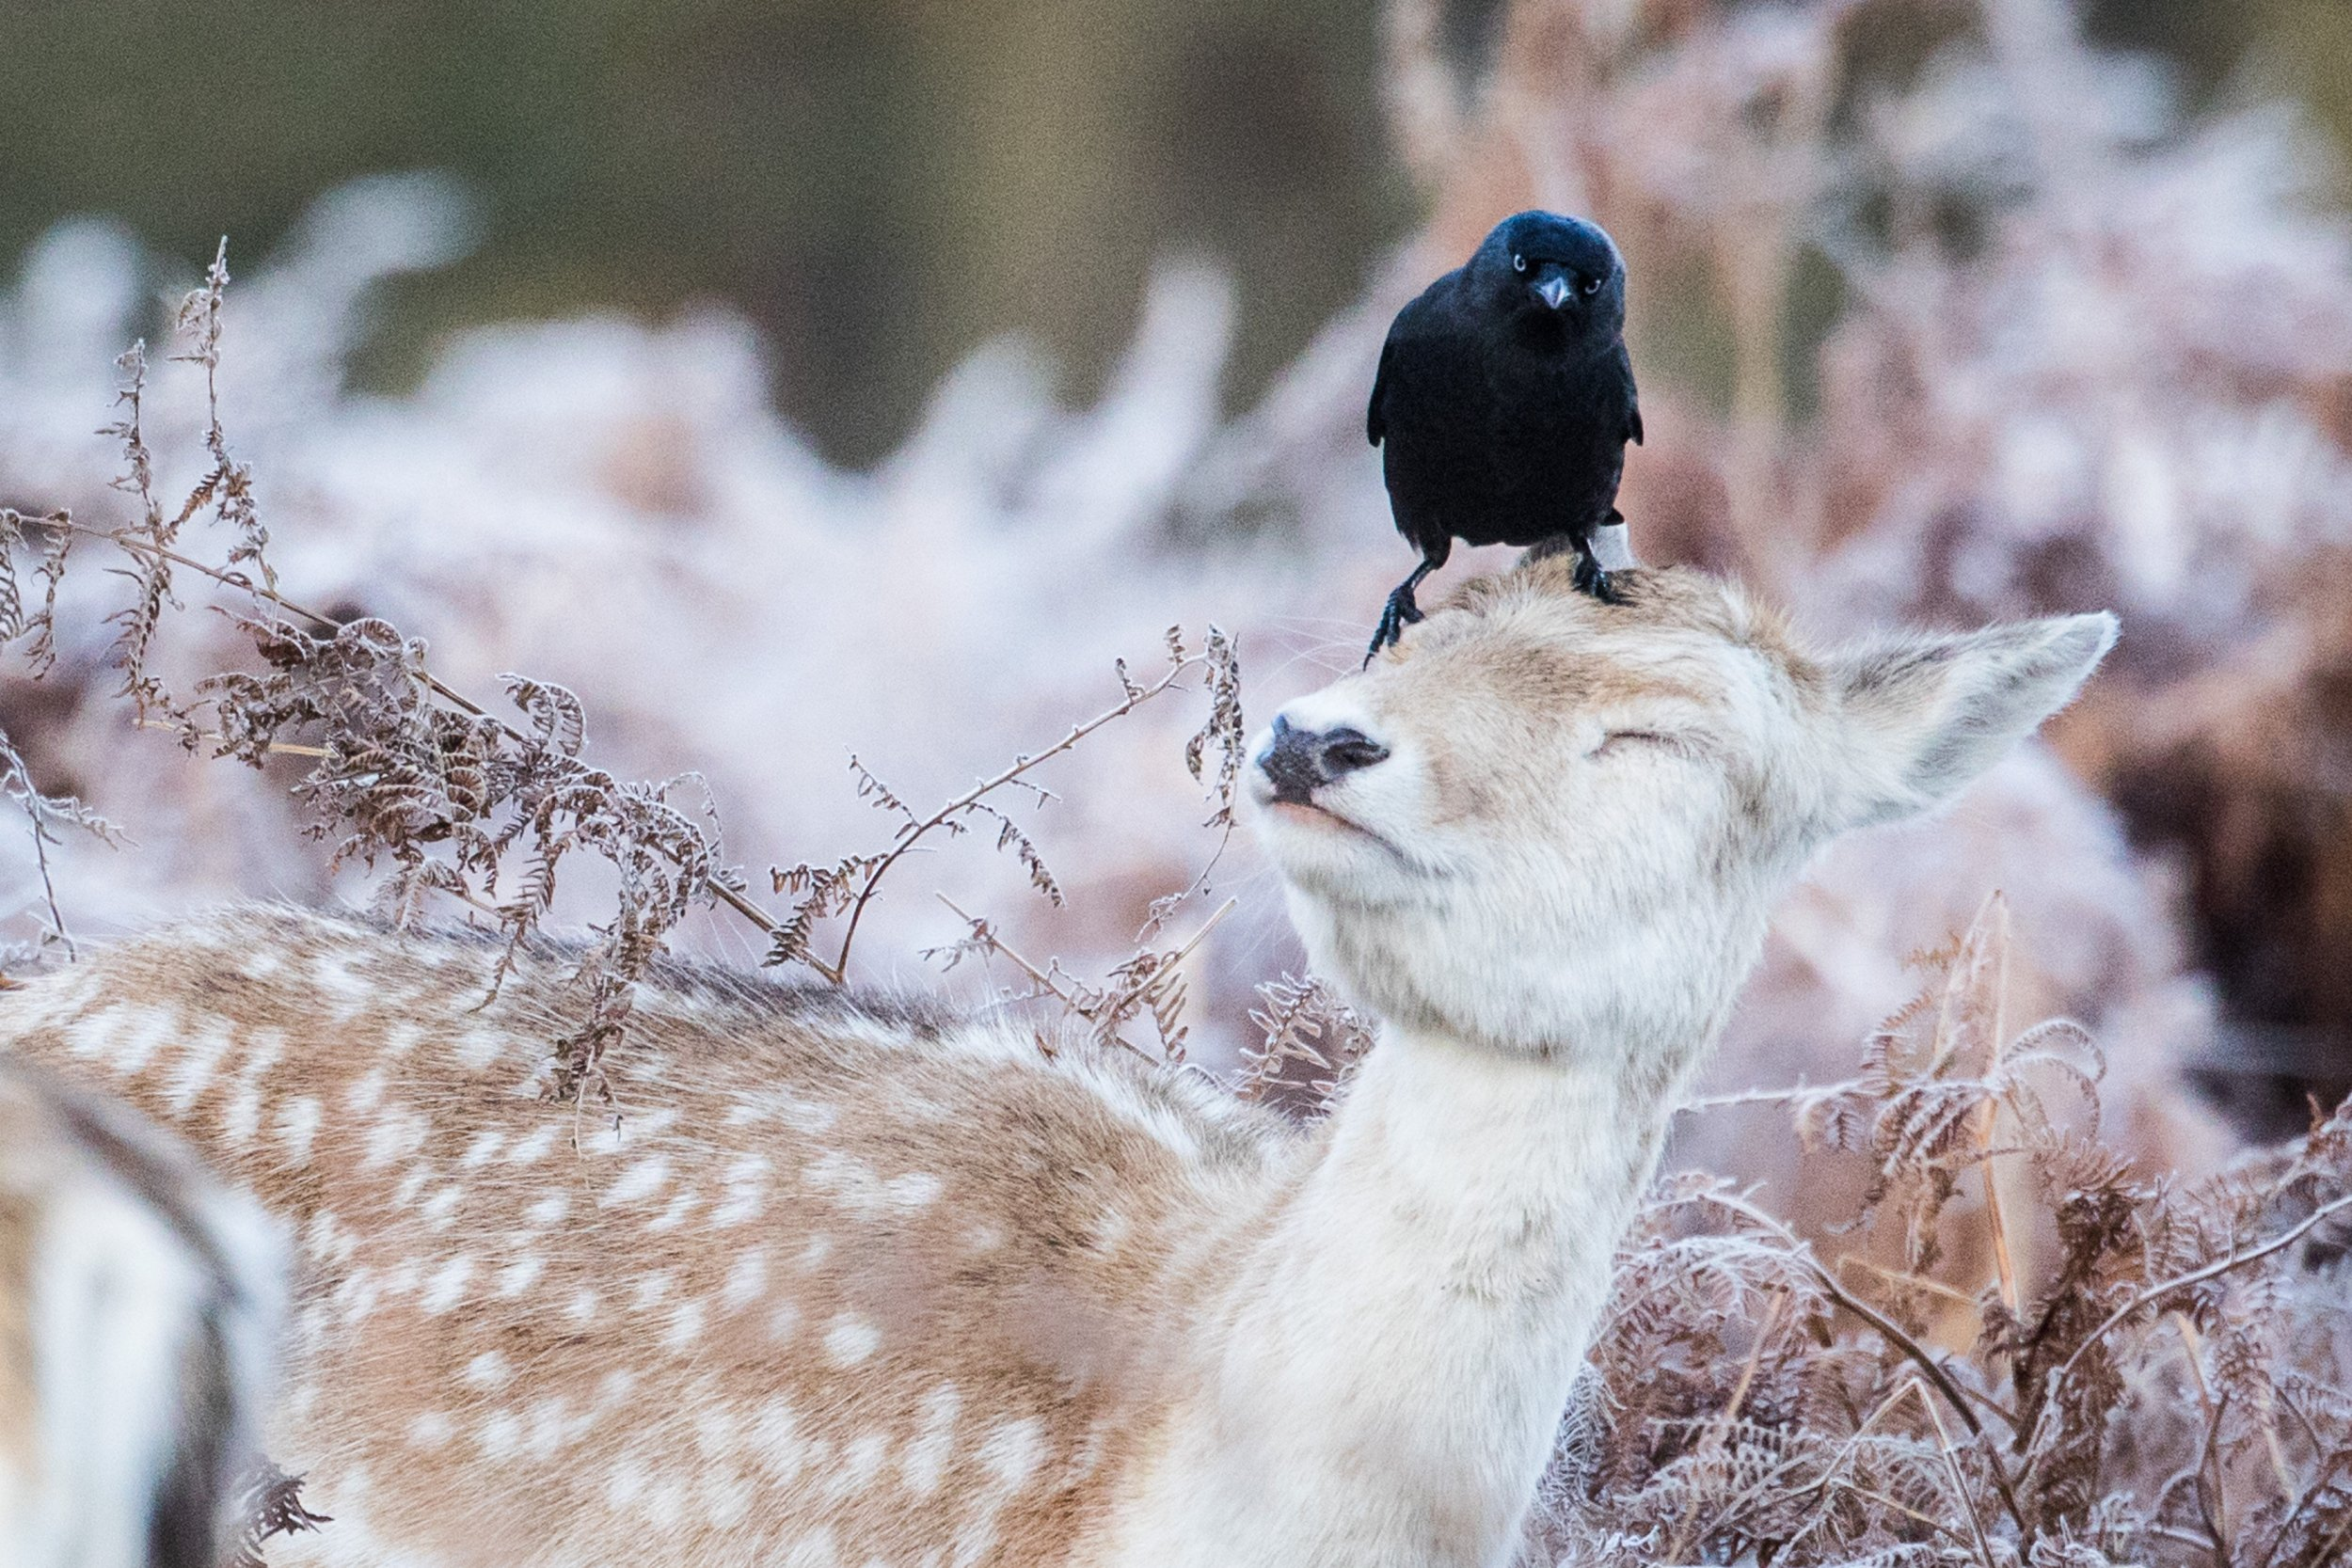 Breathtakingly beautiful images of Britain in all its wintry glory